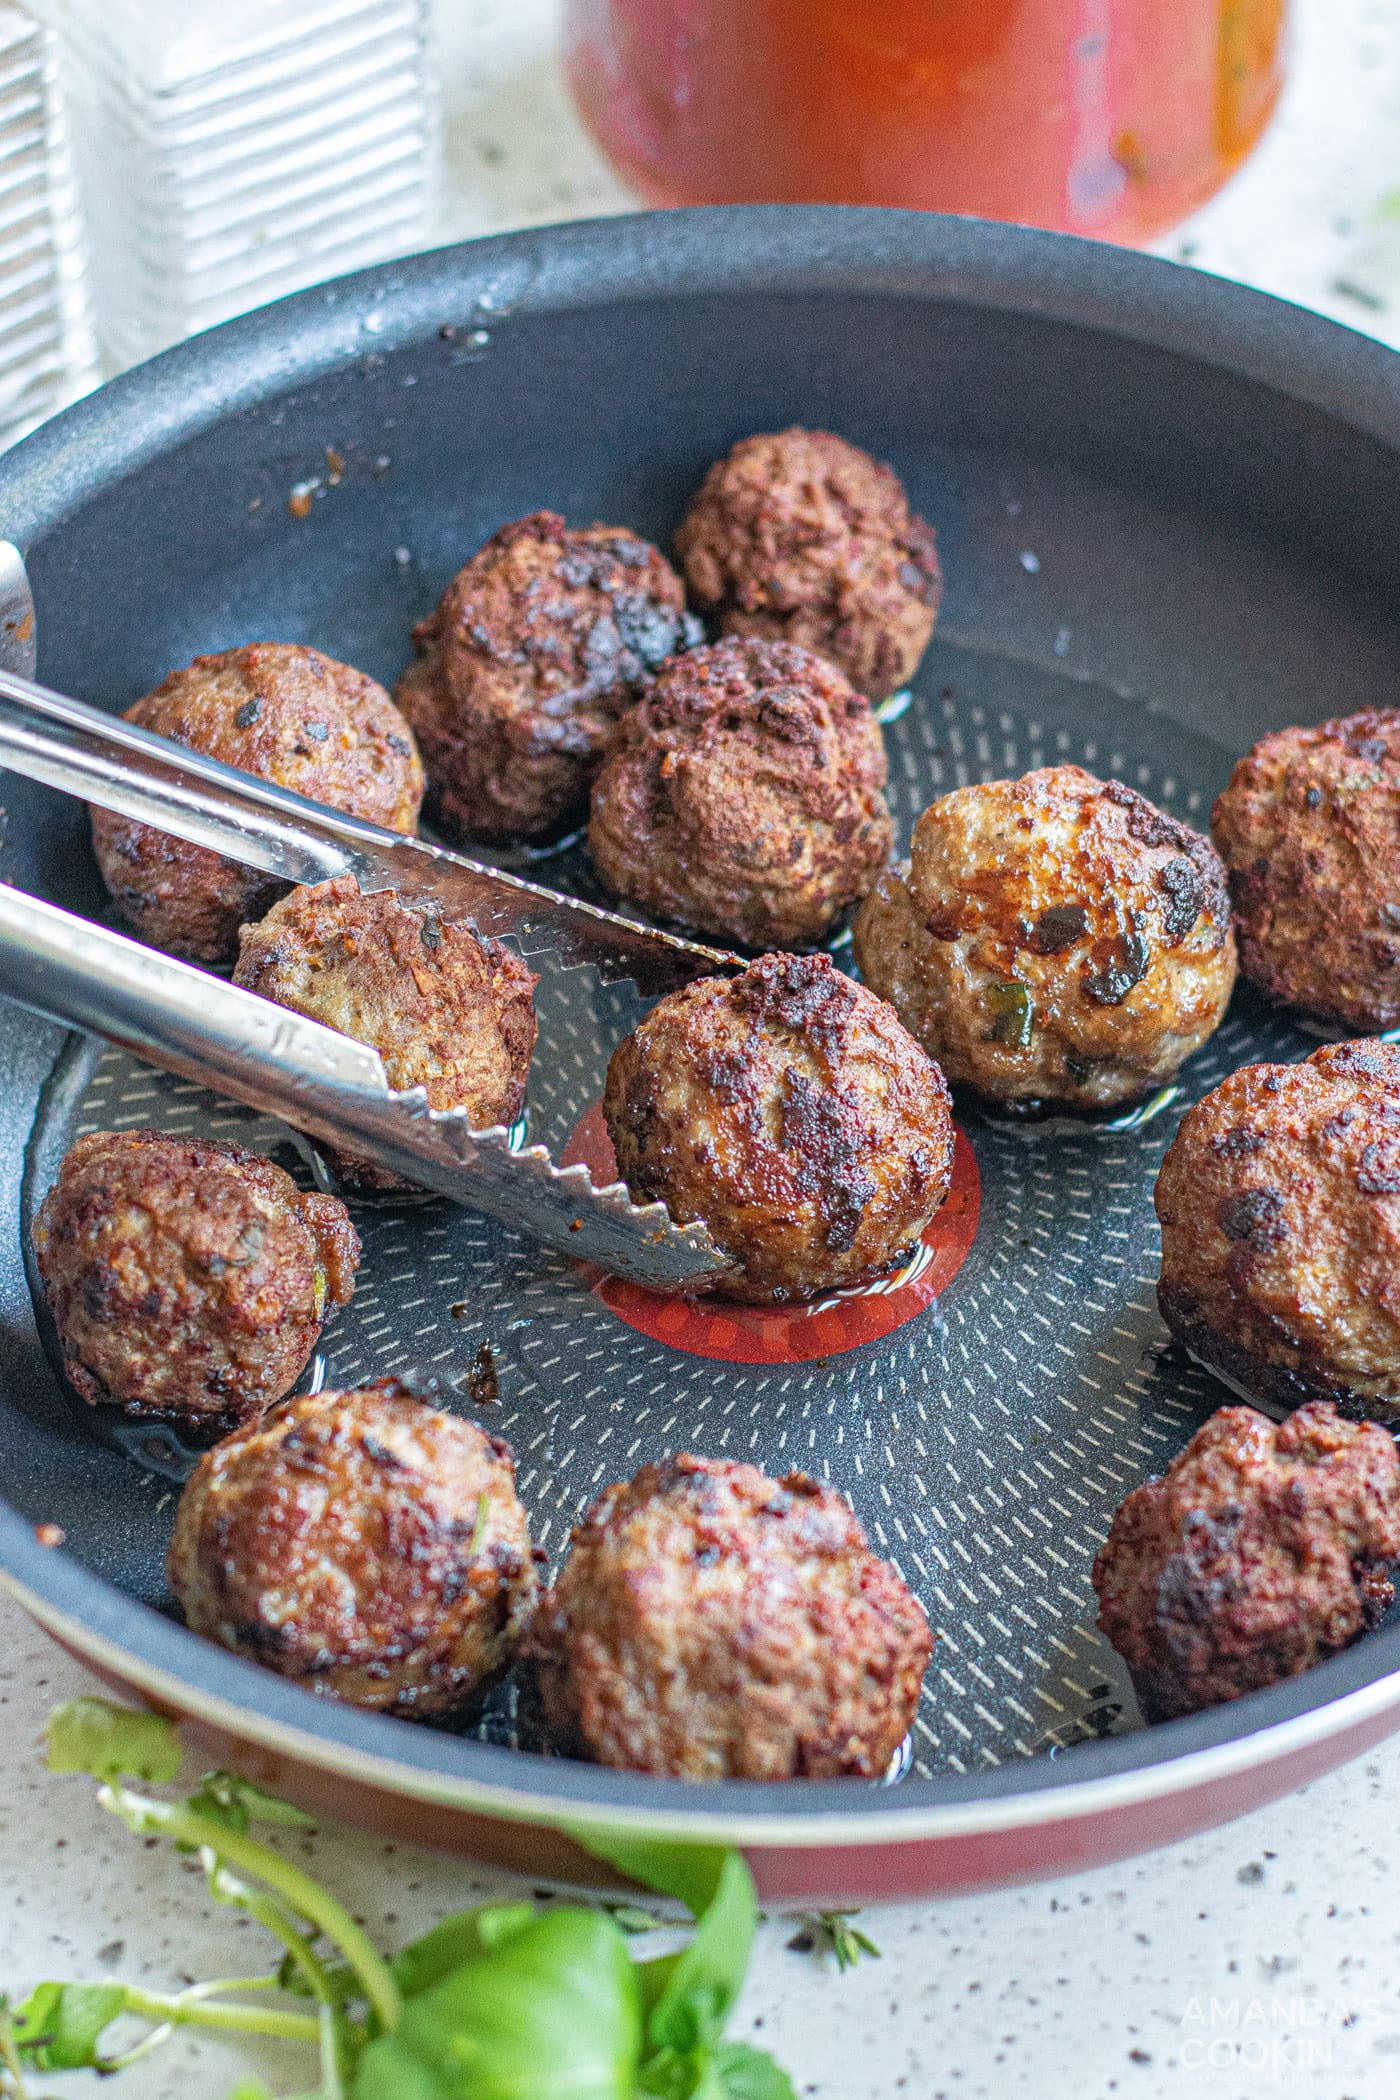 browning meatballs on a skillet